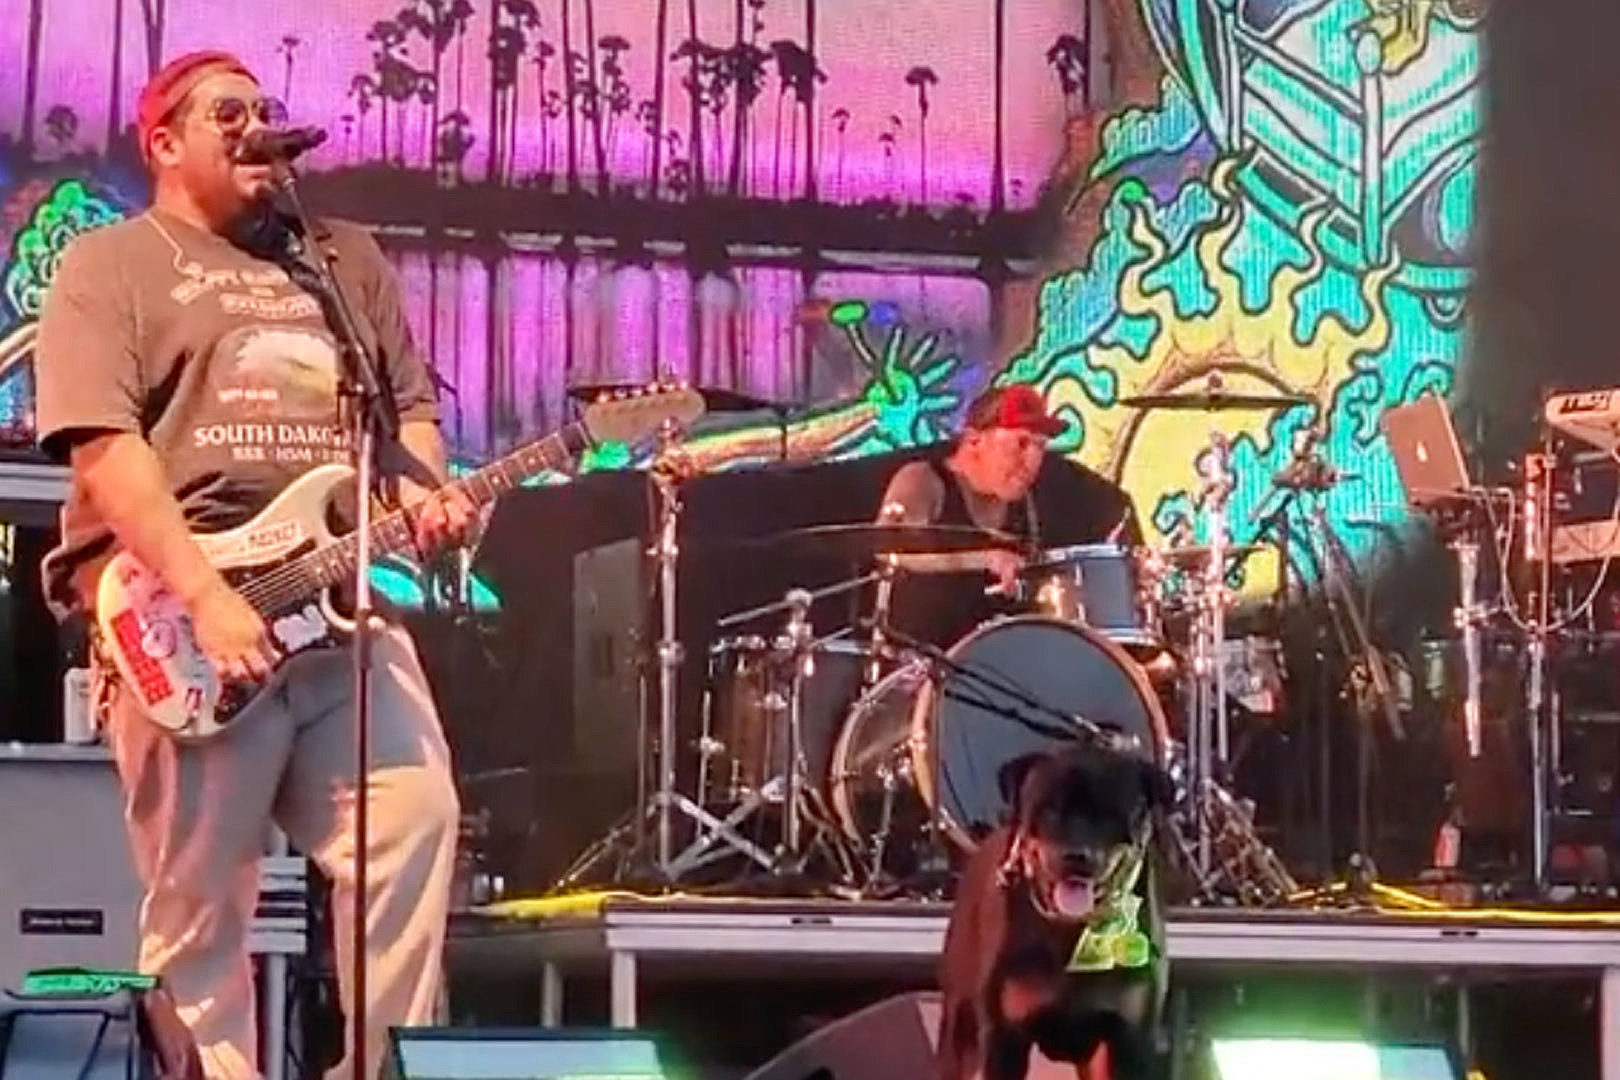 A Dog Played Fetch Onstage During Sublime's Riot Fest Set